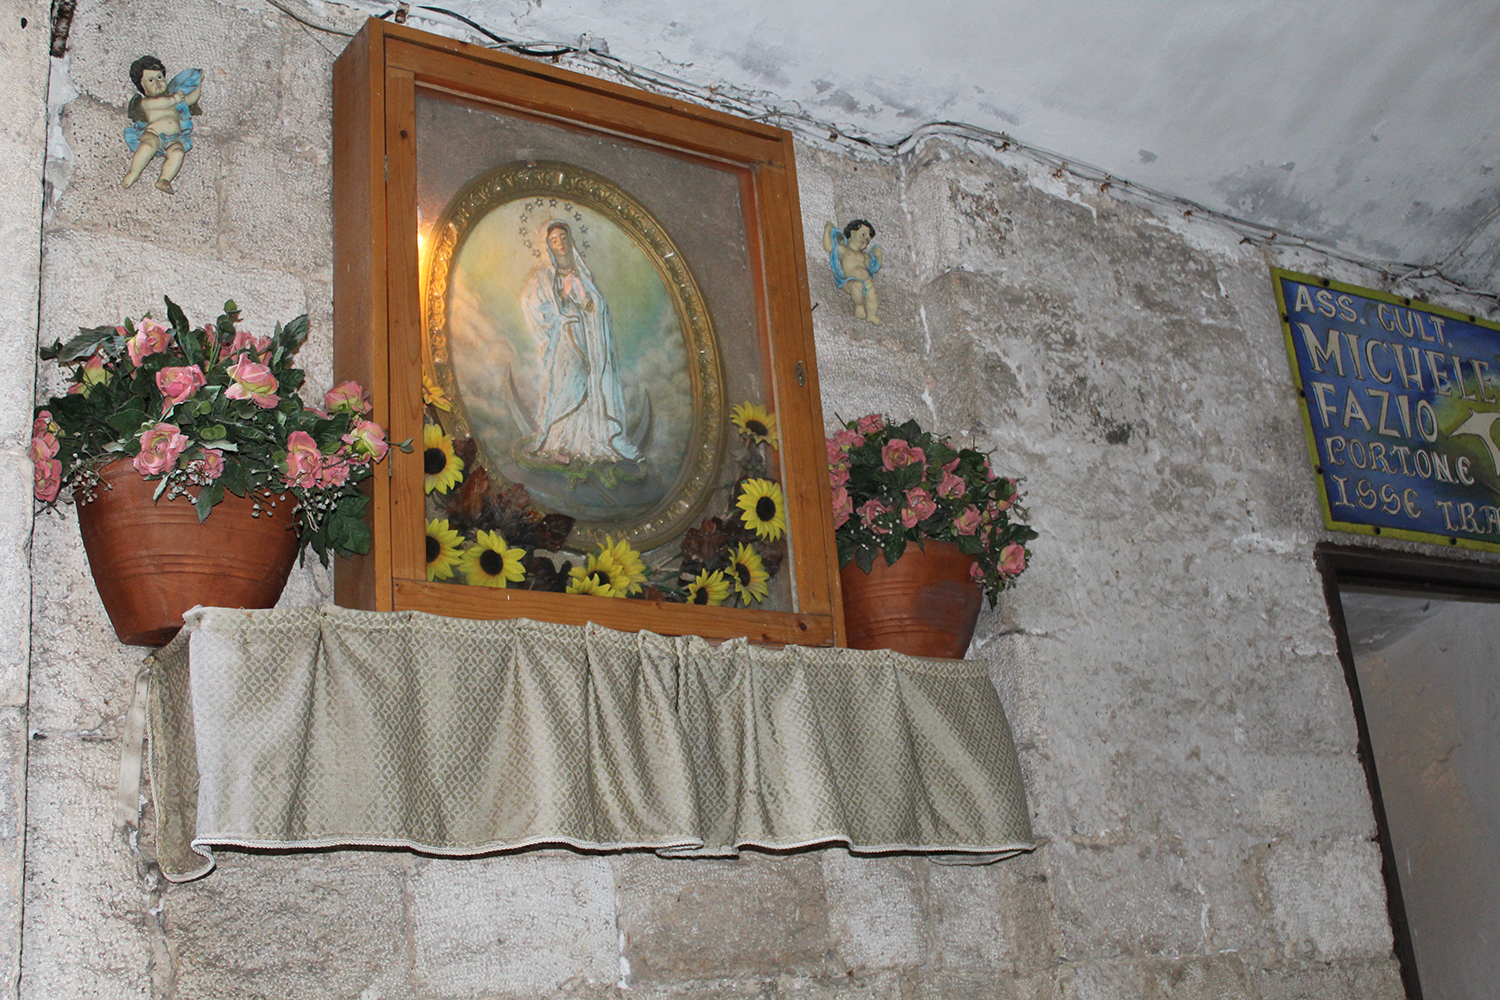 Small Altar for the madonna in Bari, puglia